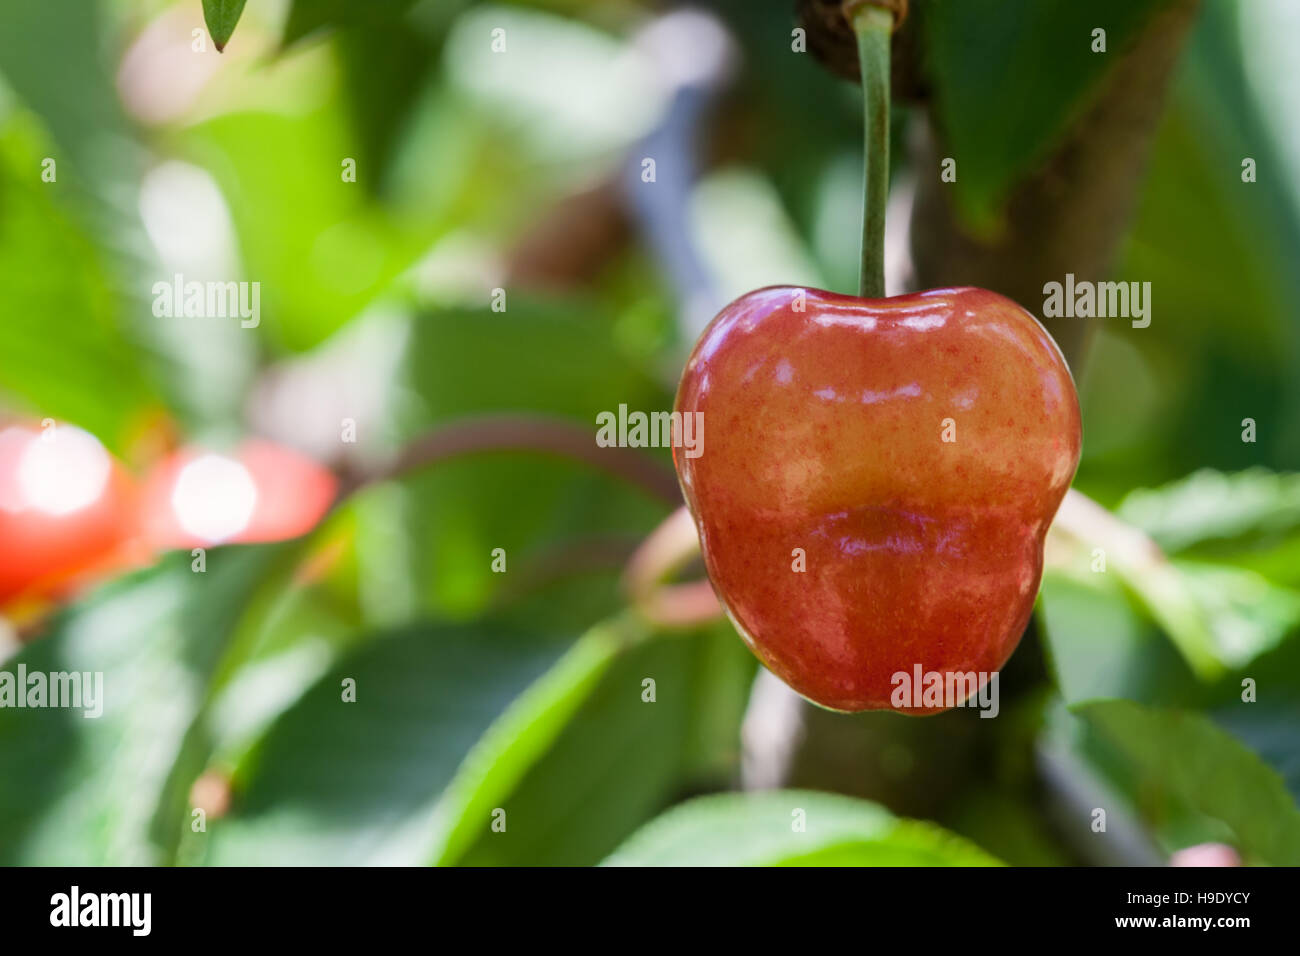 Closeup view of delicious red cherry hanging on a tree with blurred background - Stock Image